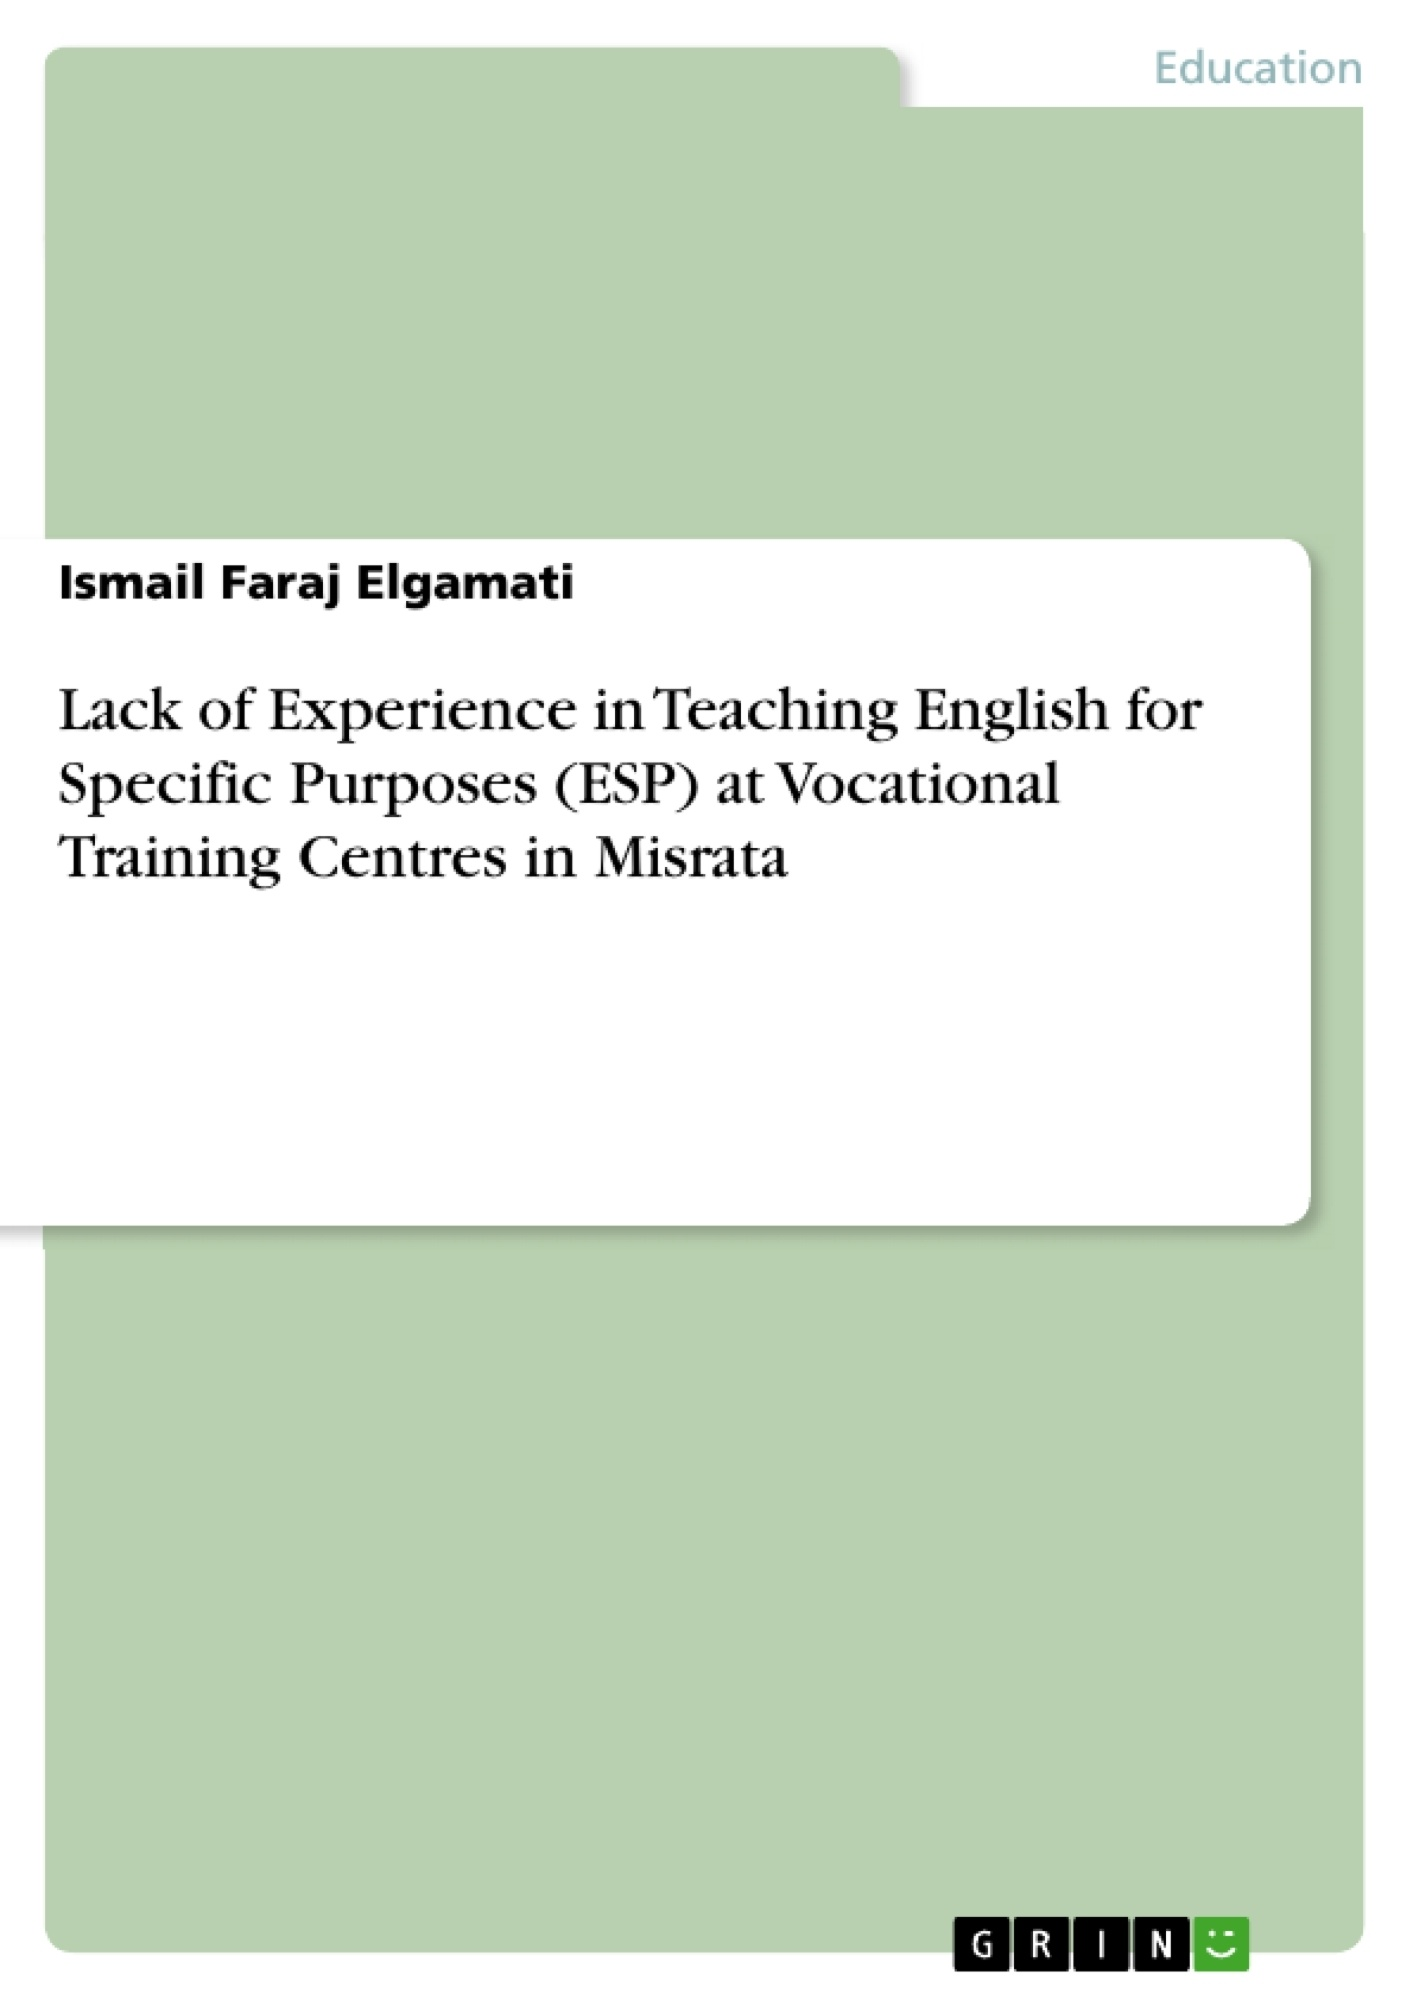 Title: Lack of Experience in Teaching English for Specific Purposes (ESP) at Vocational Training Centres in Misrata